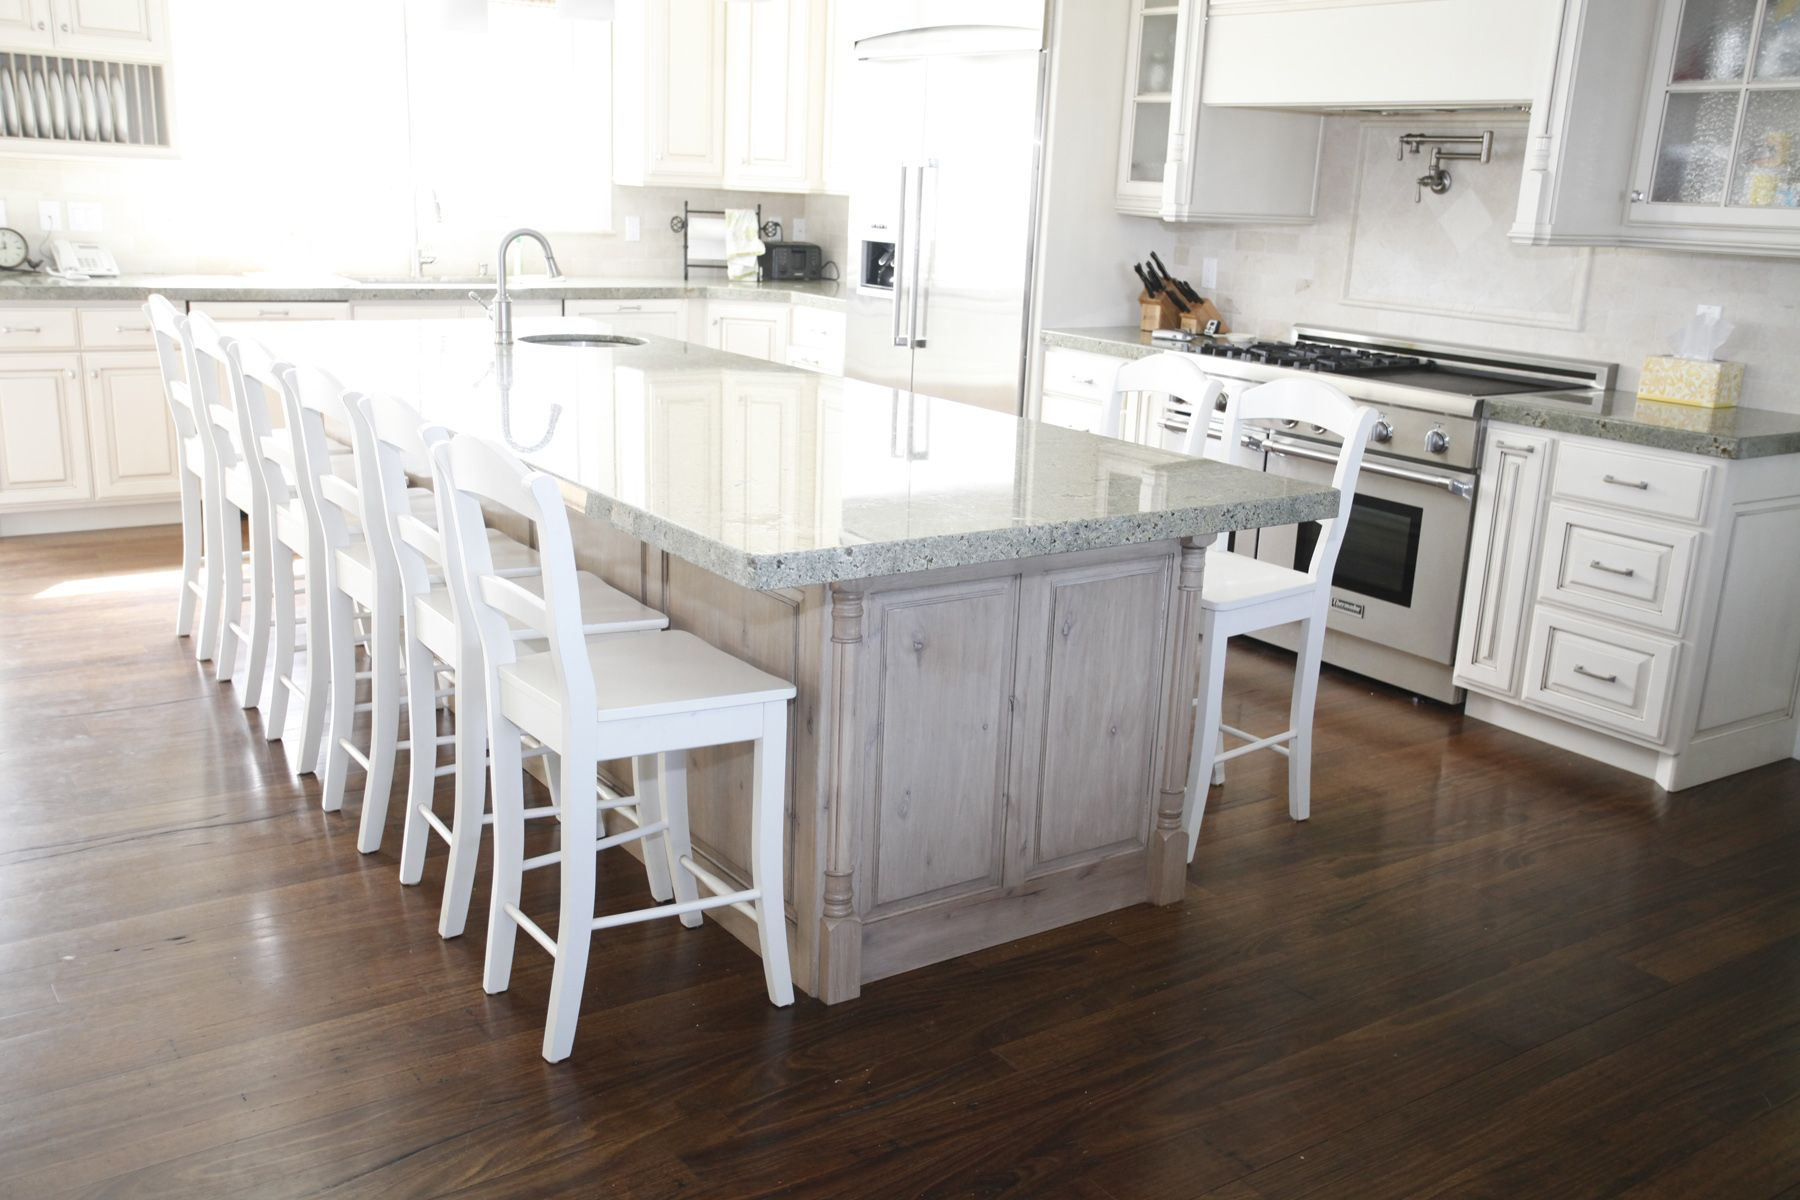 installing wood floors in kitchen - Google Search | My Style ...